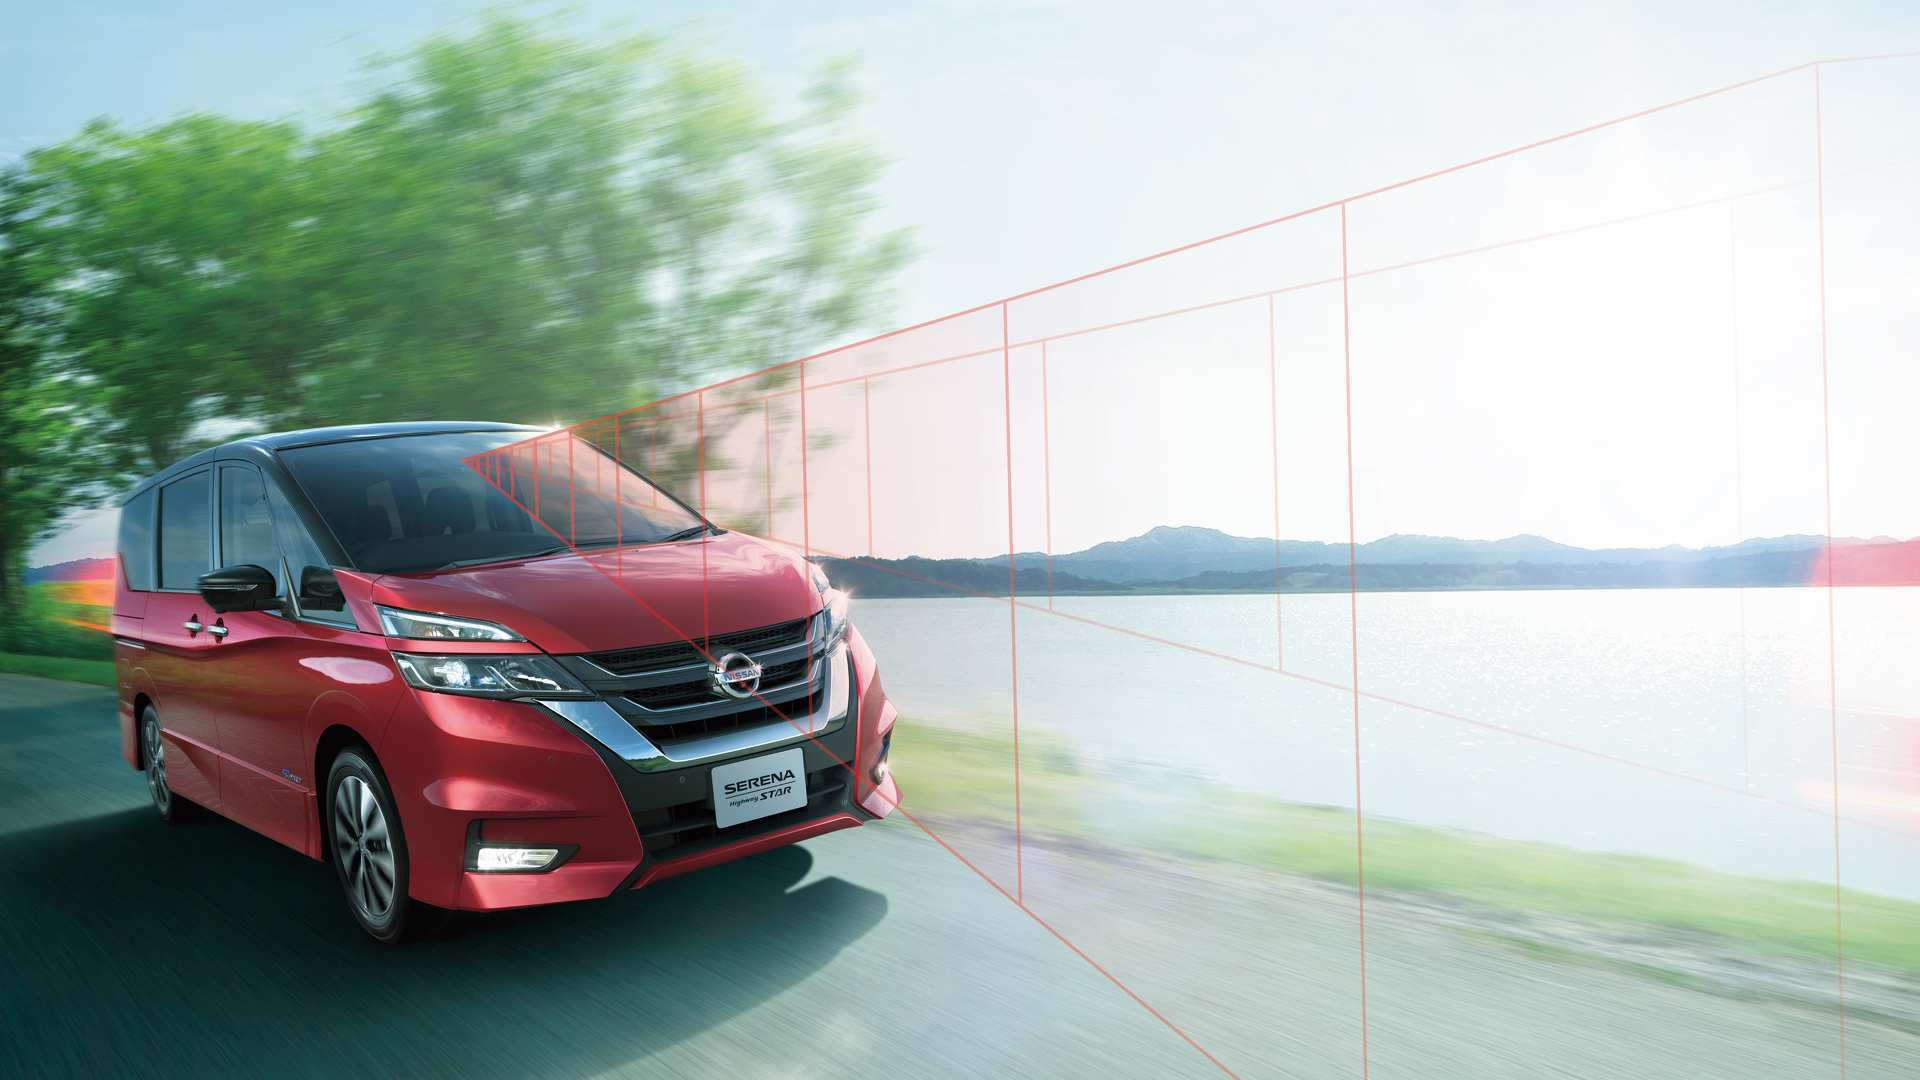 87 New Nissan Serena 2020 Style